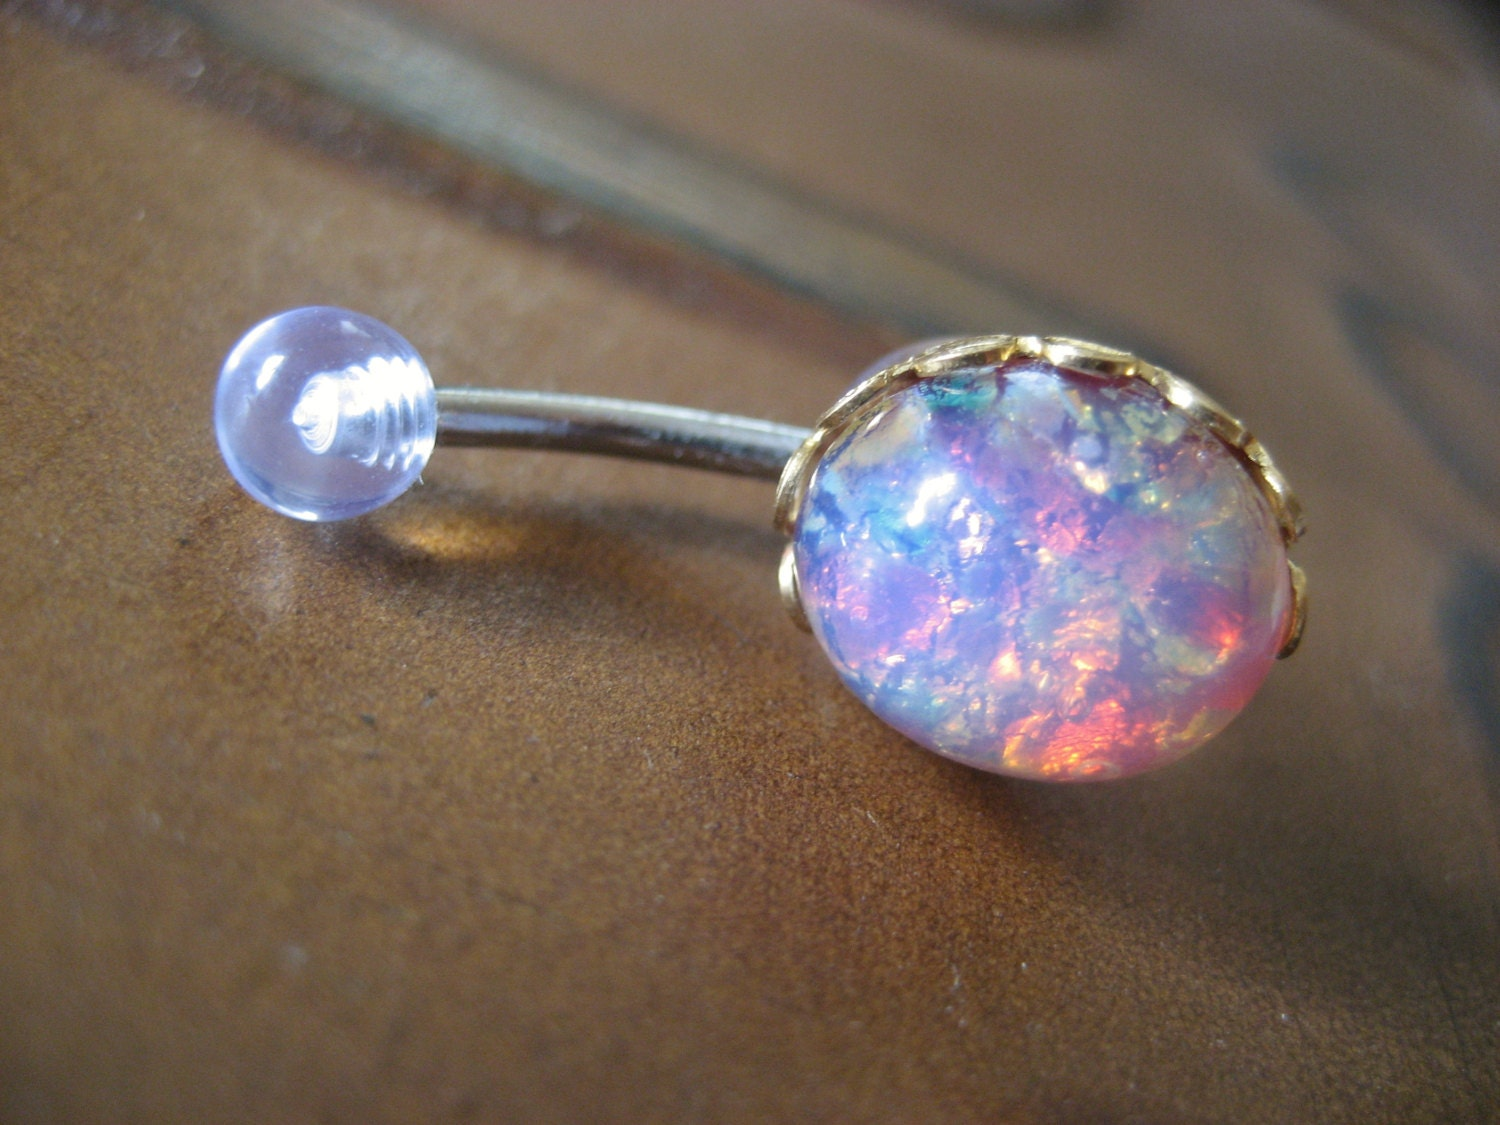 pink opal belly button jewelry stud ring navel piercing bar